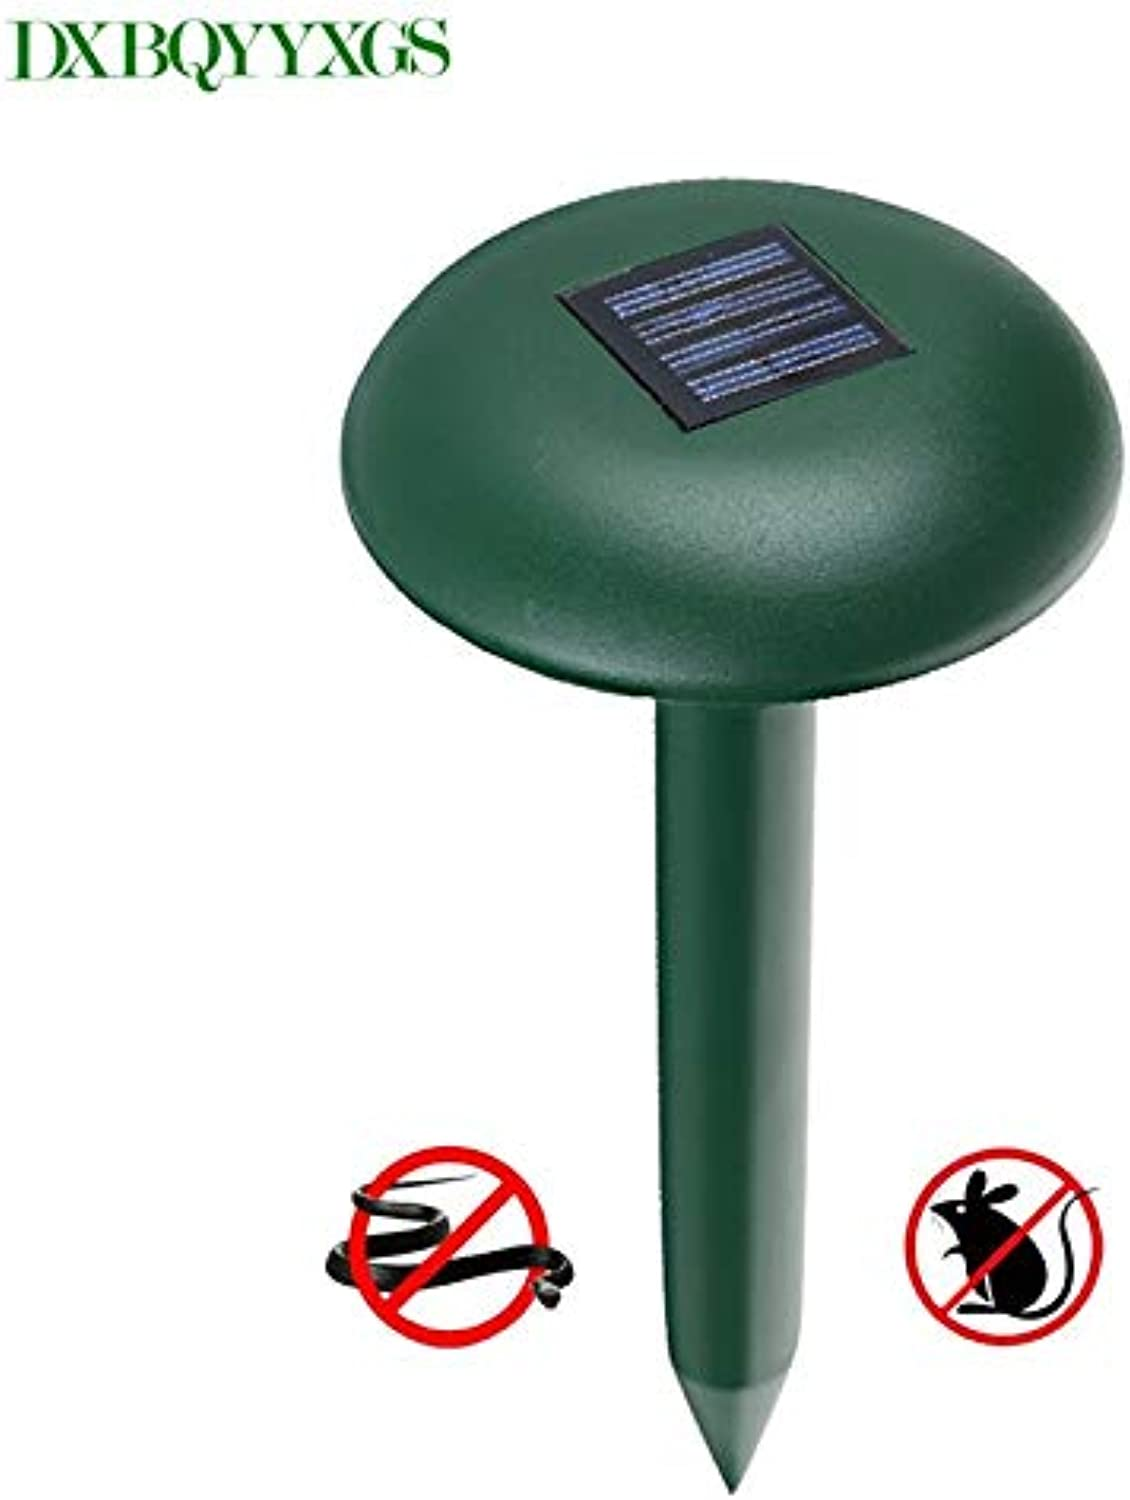 DXBQYYXGS mole Rodent mice Repeller Outdoor Mouse repelente ultrasonico Sonic Ultra Snake Patch from Moles pest Repeller Solar